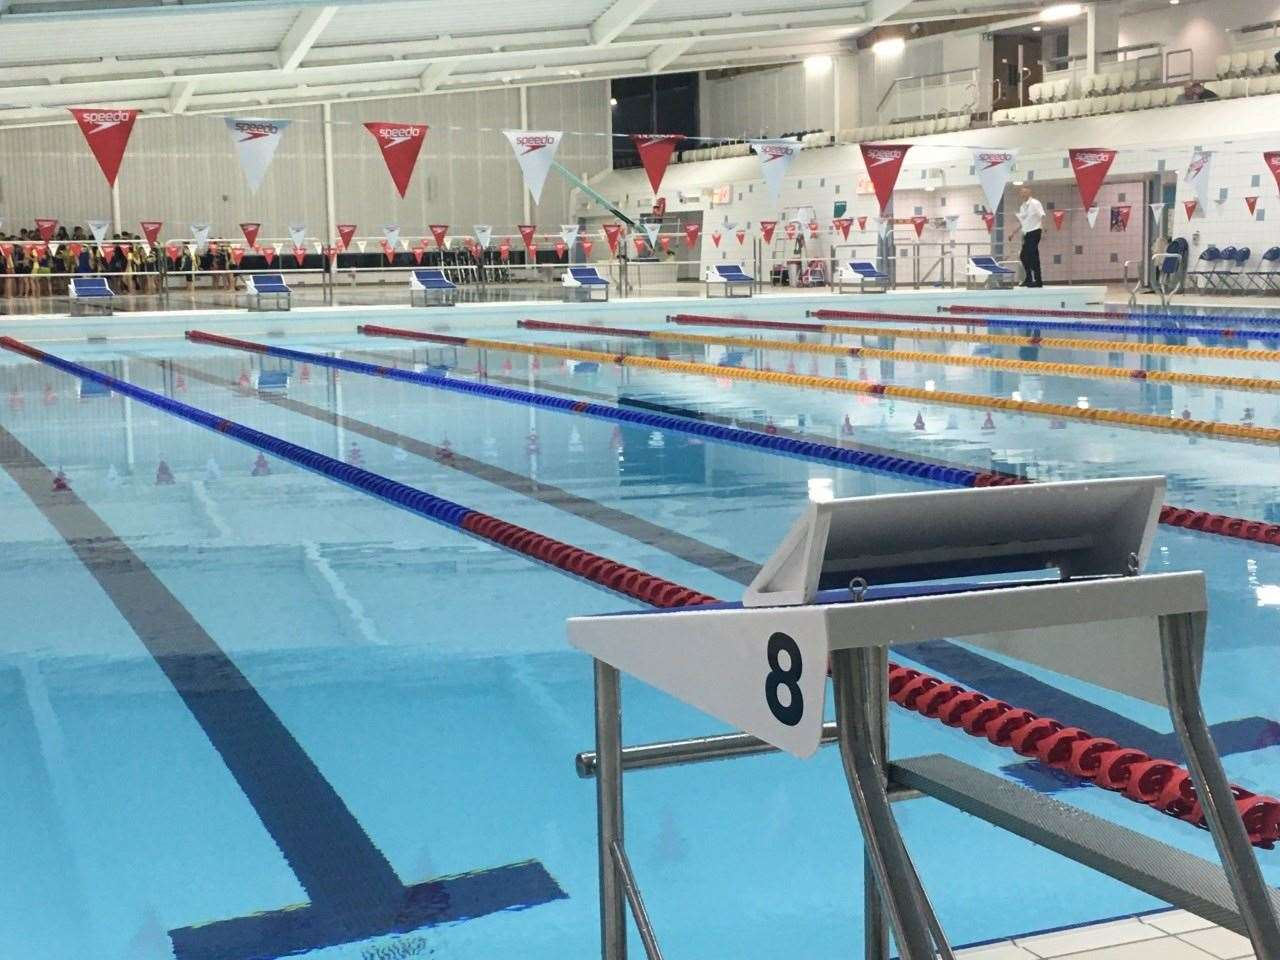 Swimming clubs will be able to get back into their pools later this month, following today's government announcement